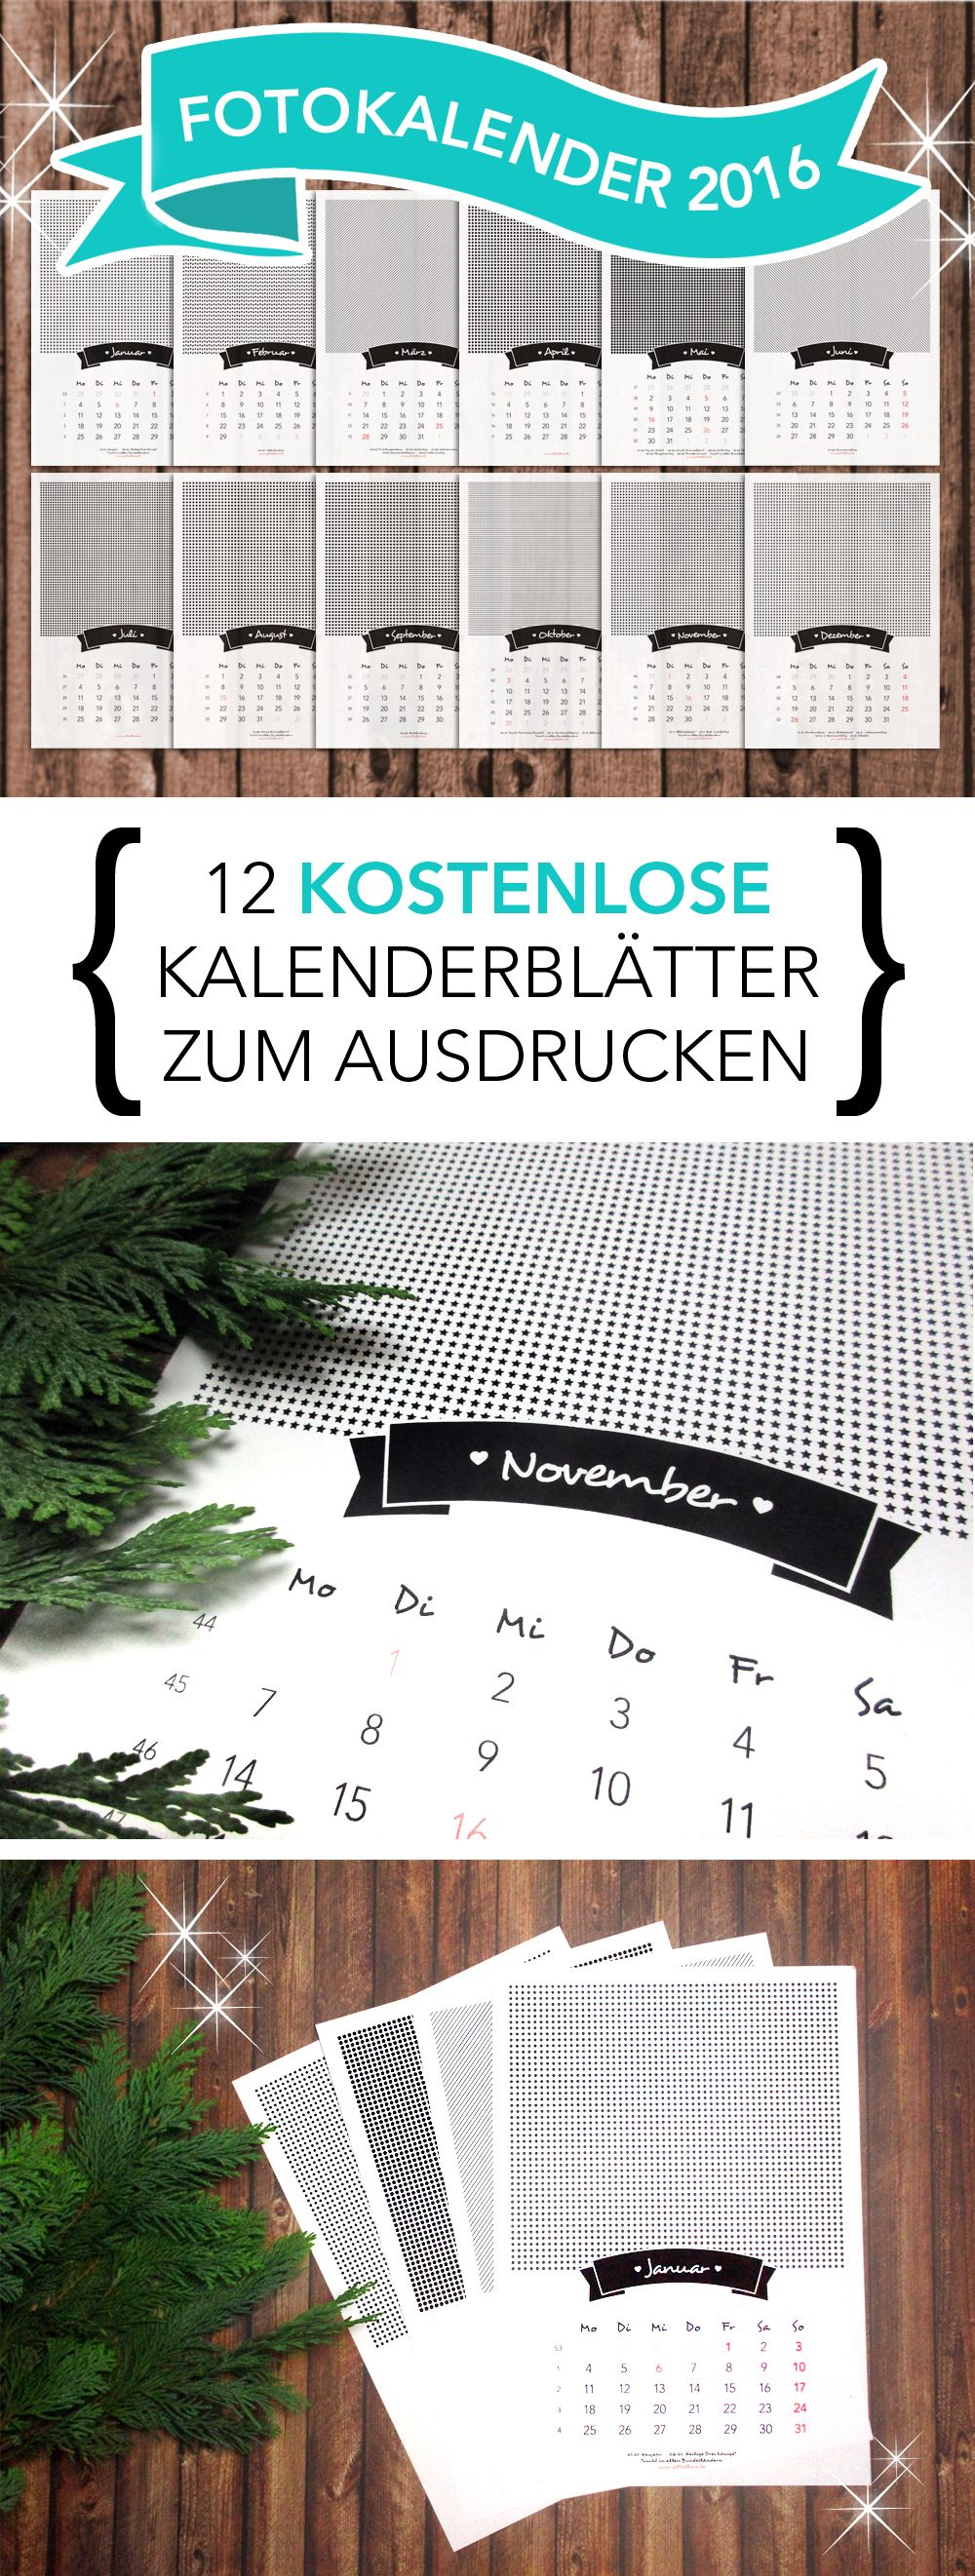 weihnachtsgeschenke selber machen fotokalender f r 2016 geschenke pinterest geschenke. Black Bedroom Furniture Sets. Home Design Ideas